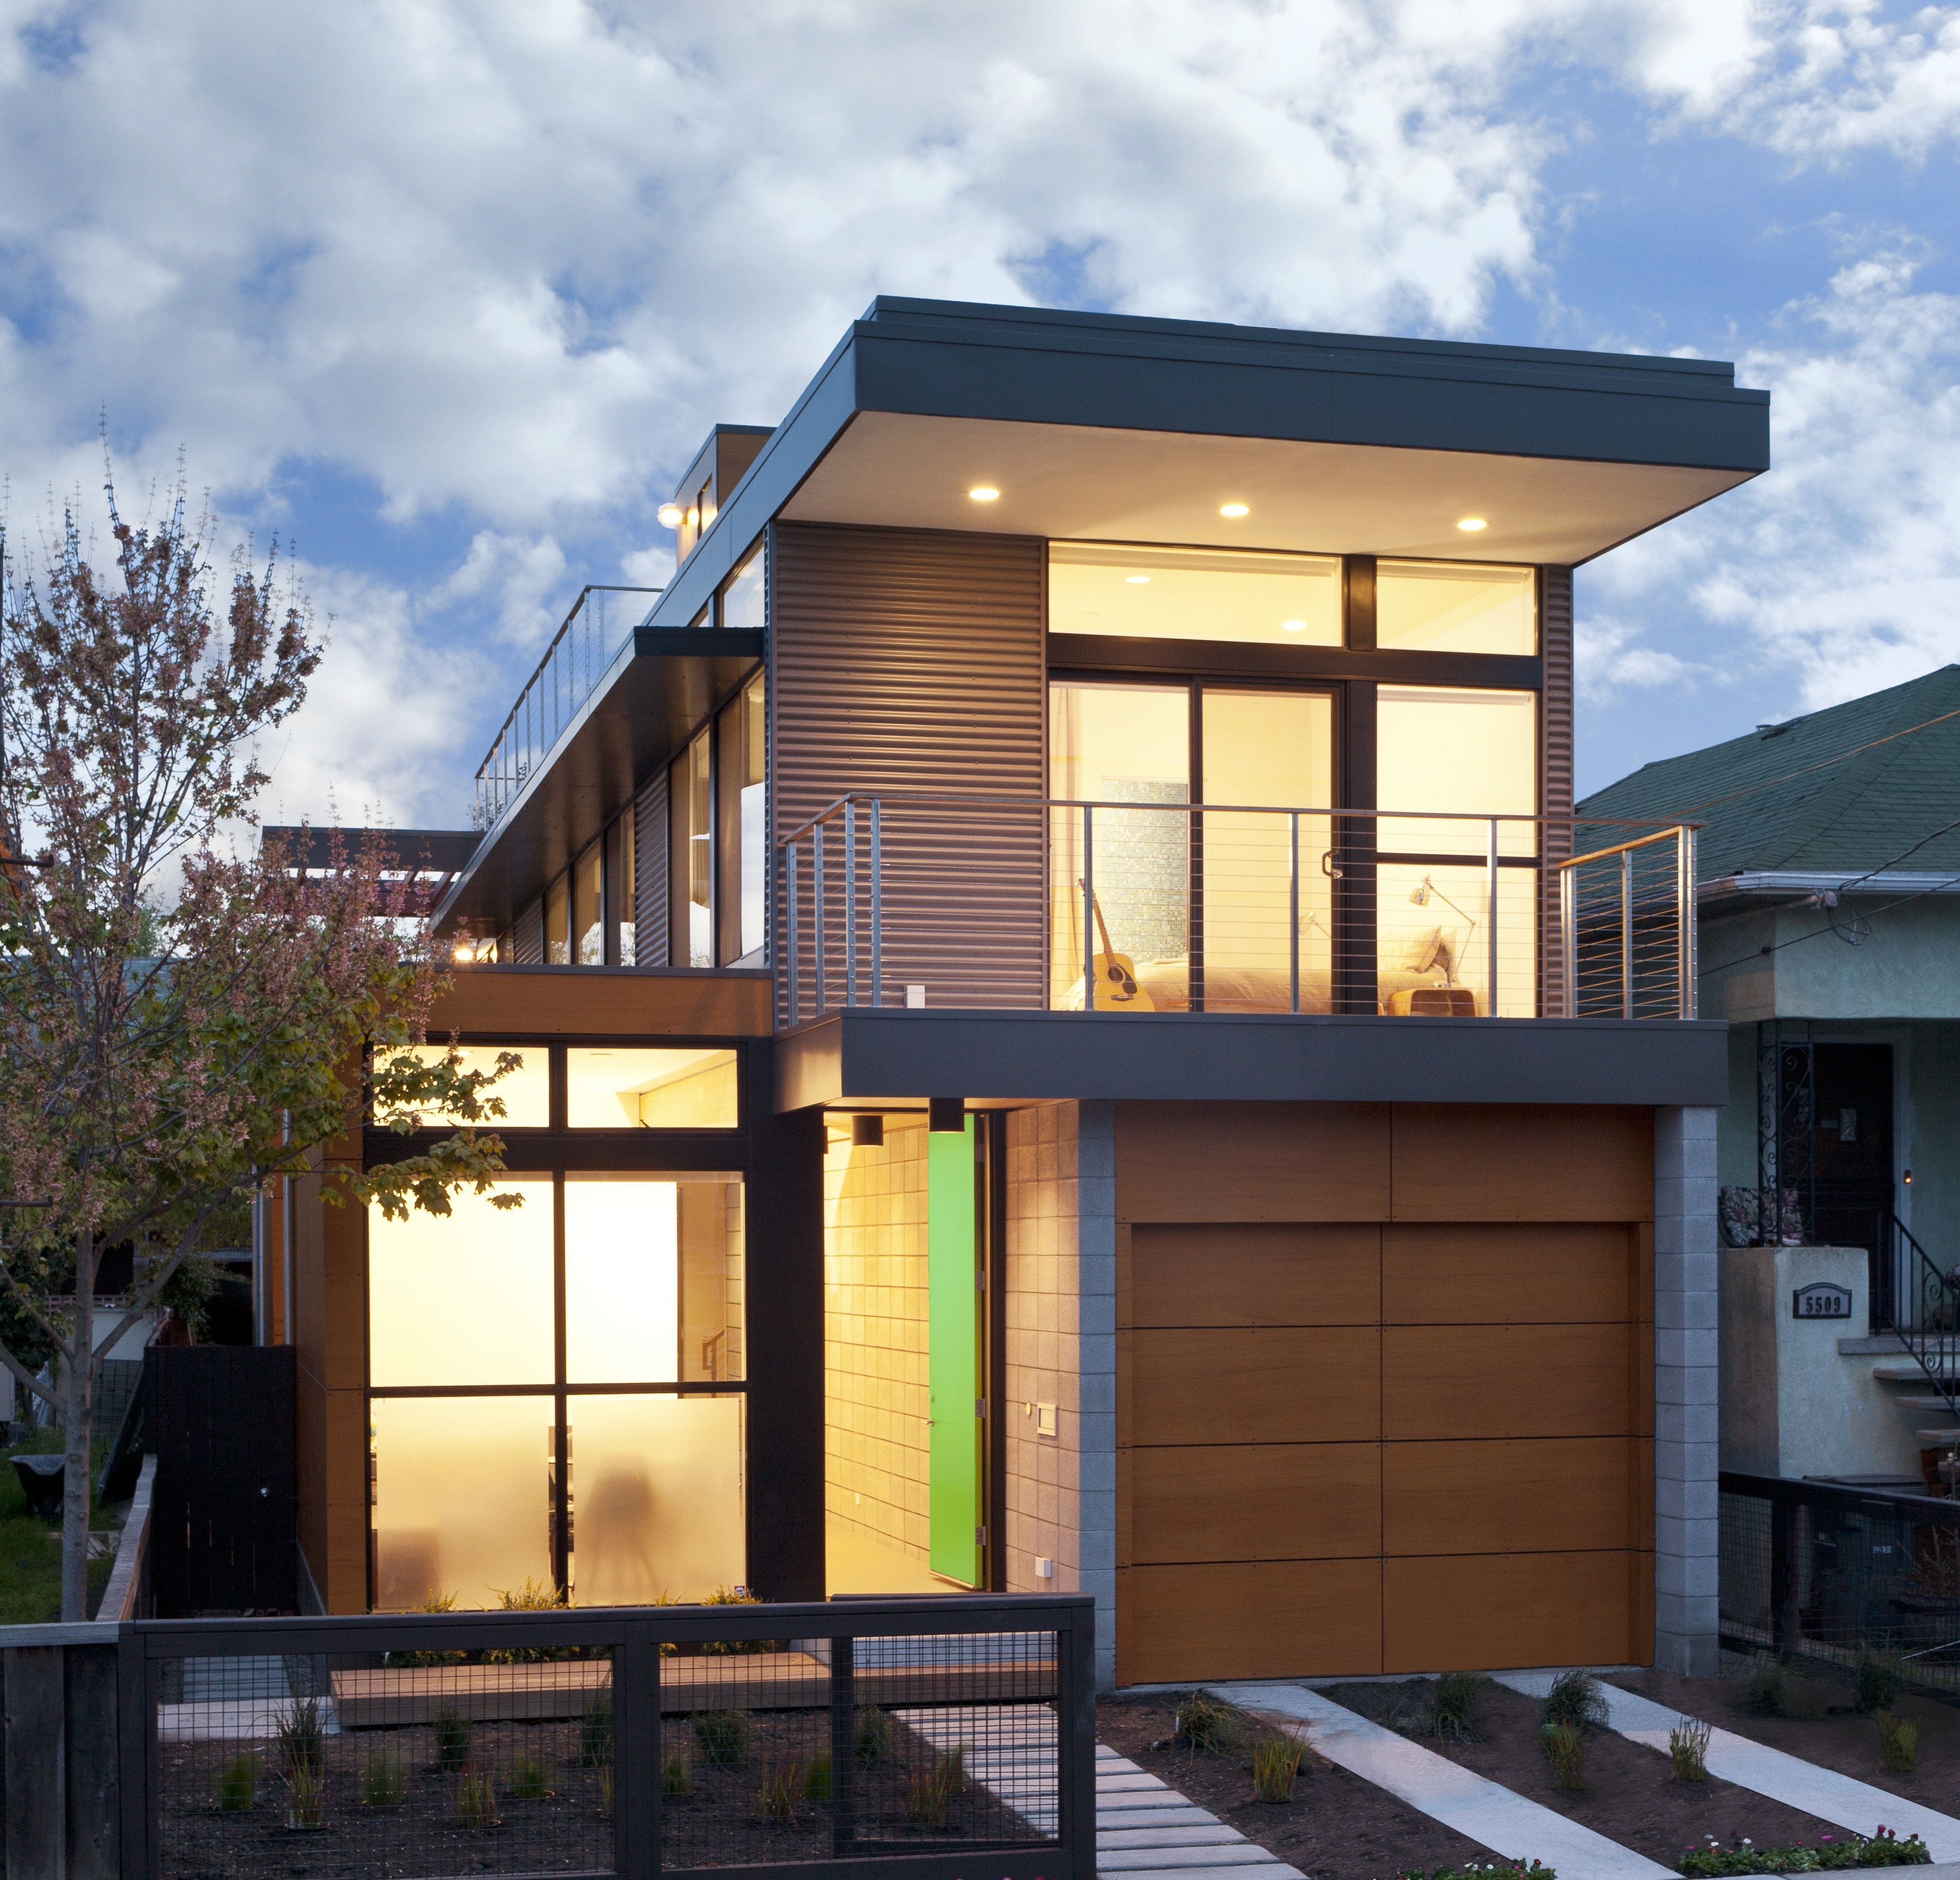 Cool wooden fence awesome premanufactured homes design ideas